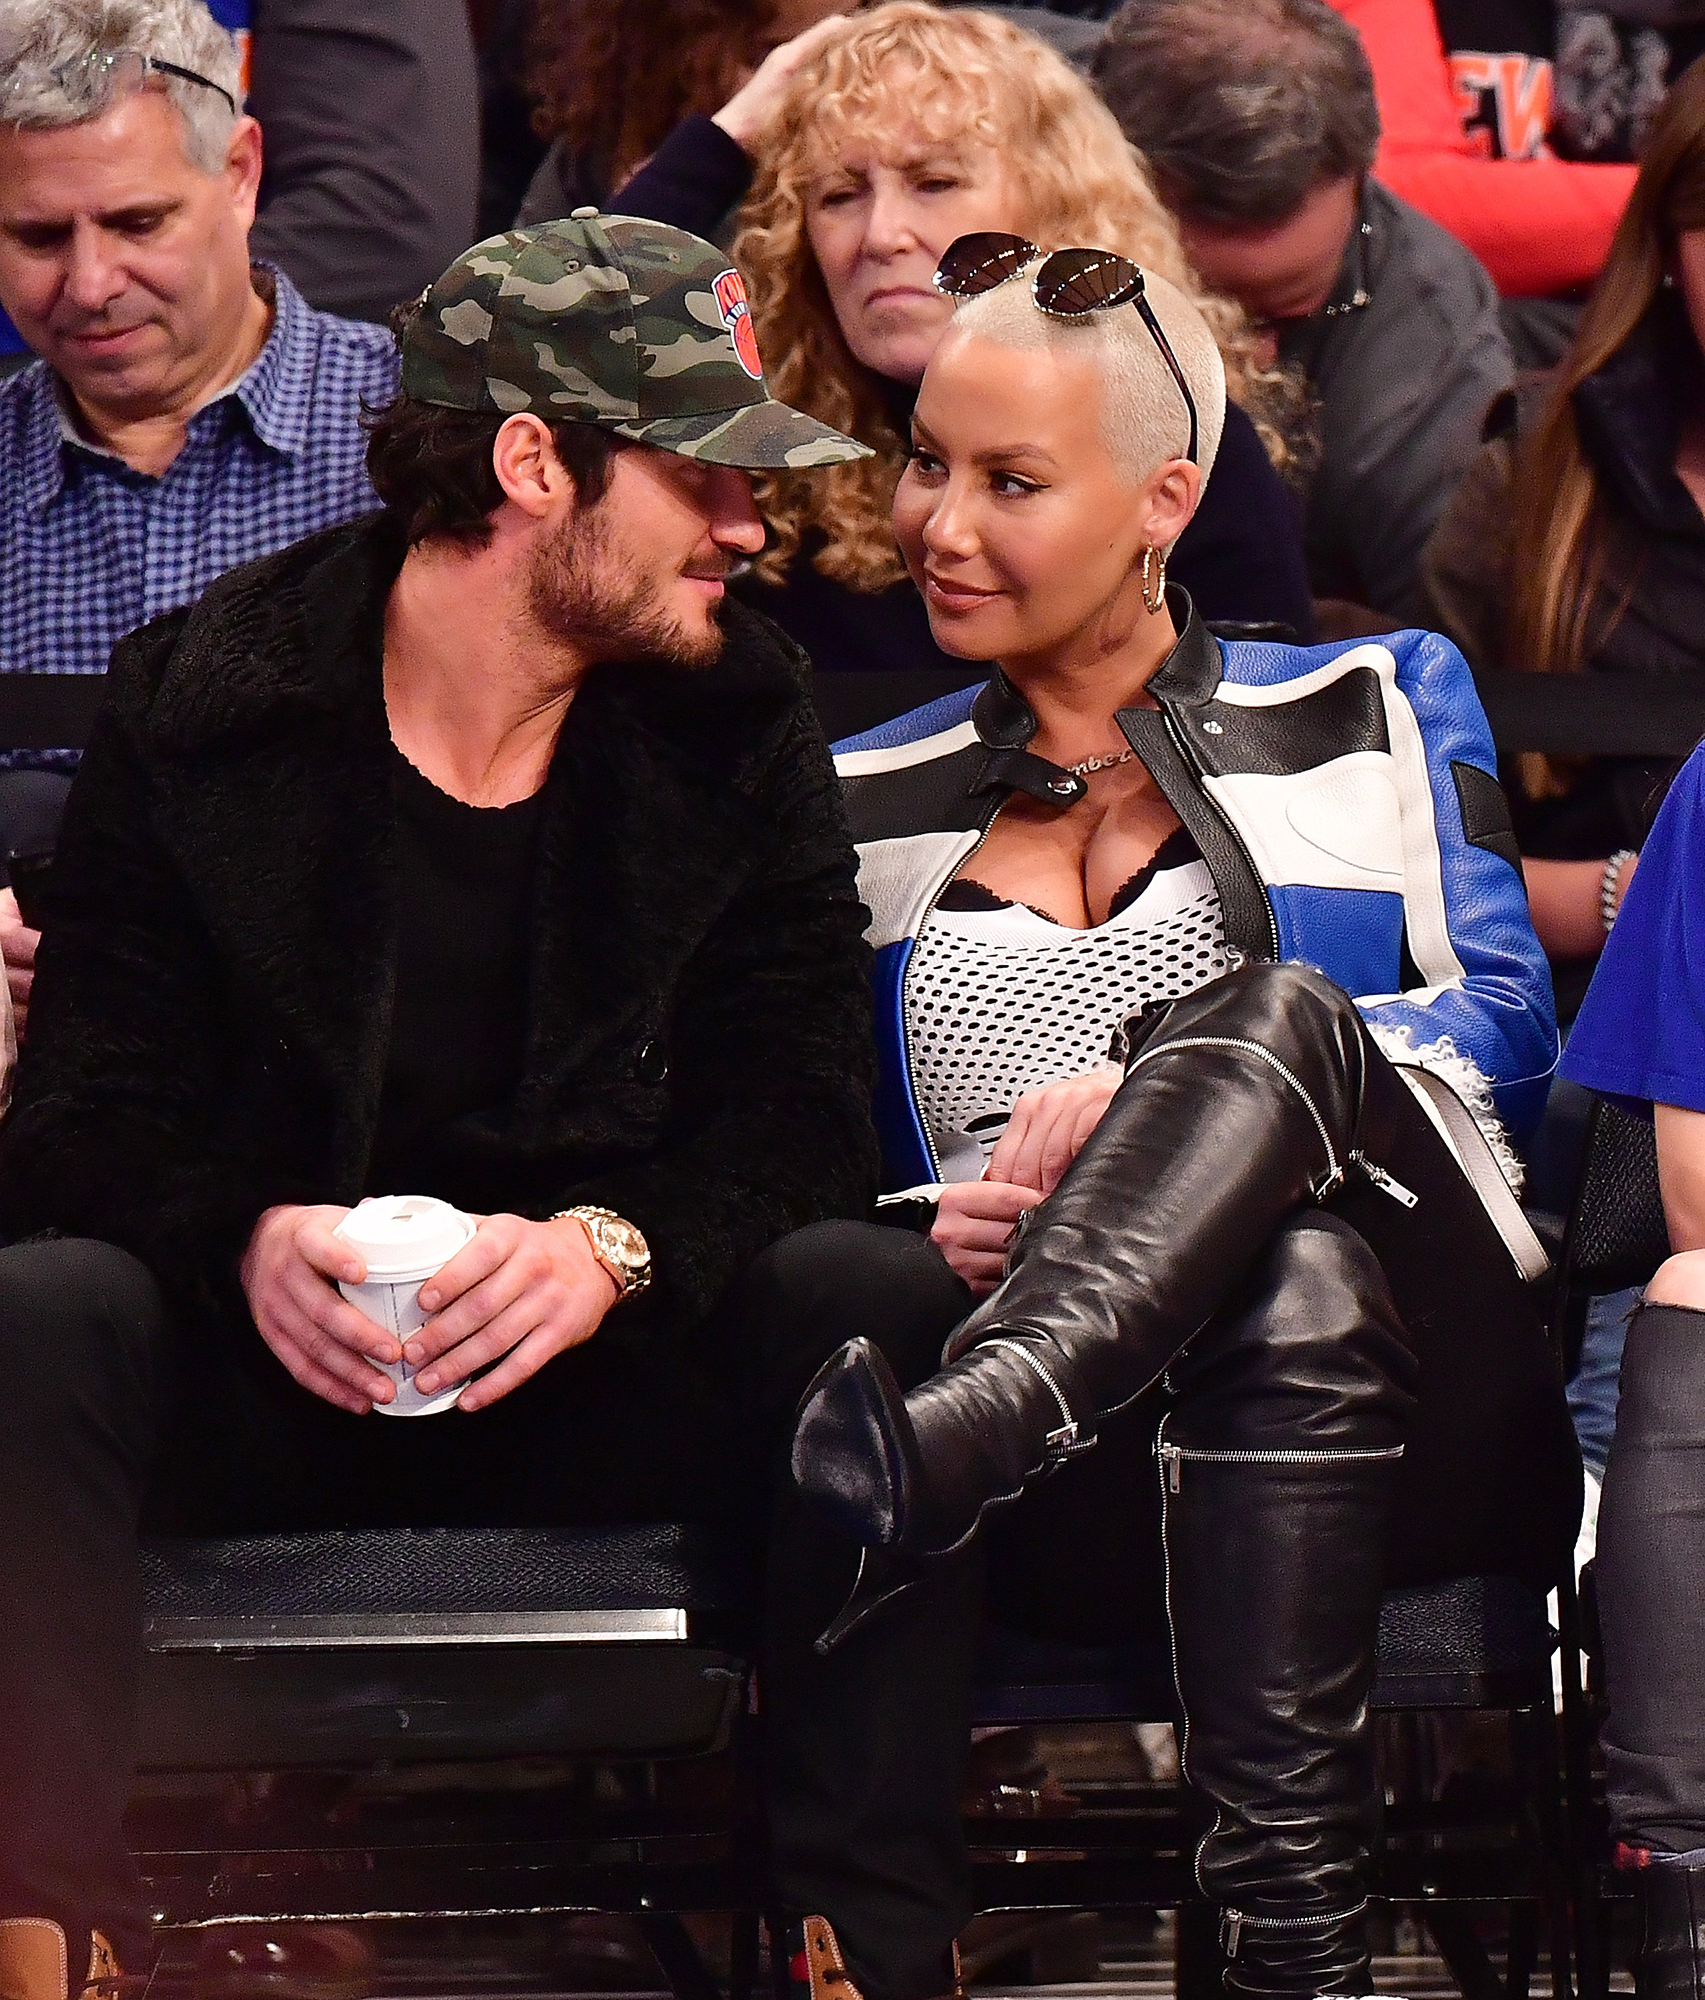 "Amber Rose and Val Chmerkovskiy Basketball game 2016 - Johnson and Chmerkovskiy called it quits in 2016 and he started dating Dancing With the Stars season 23 contestant Amber Rose that December. The model publicly declared her ""love"" for the dancer in January 2017, and a source later told Us that they were "" definitely serious "" about each other."